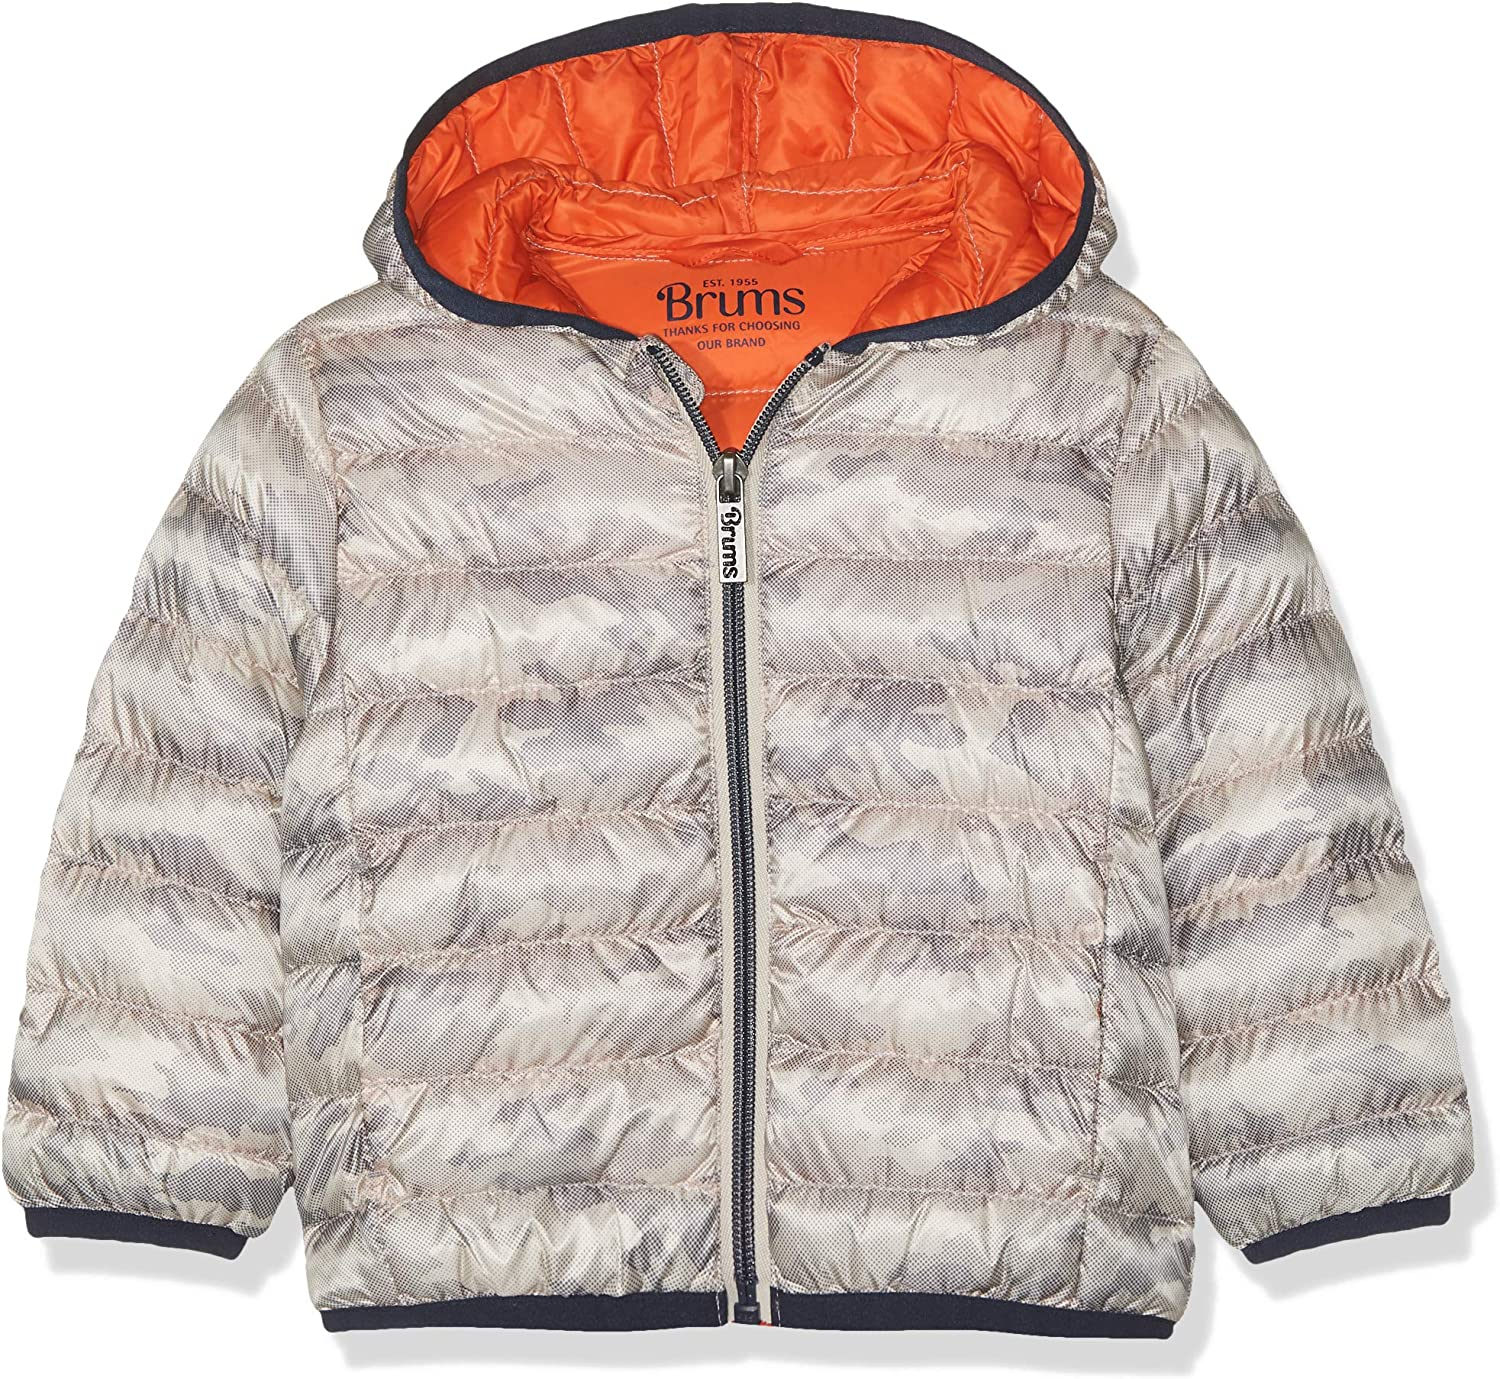 Brums Giubbino Super Light Manteau B/éb/é gar/çon